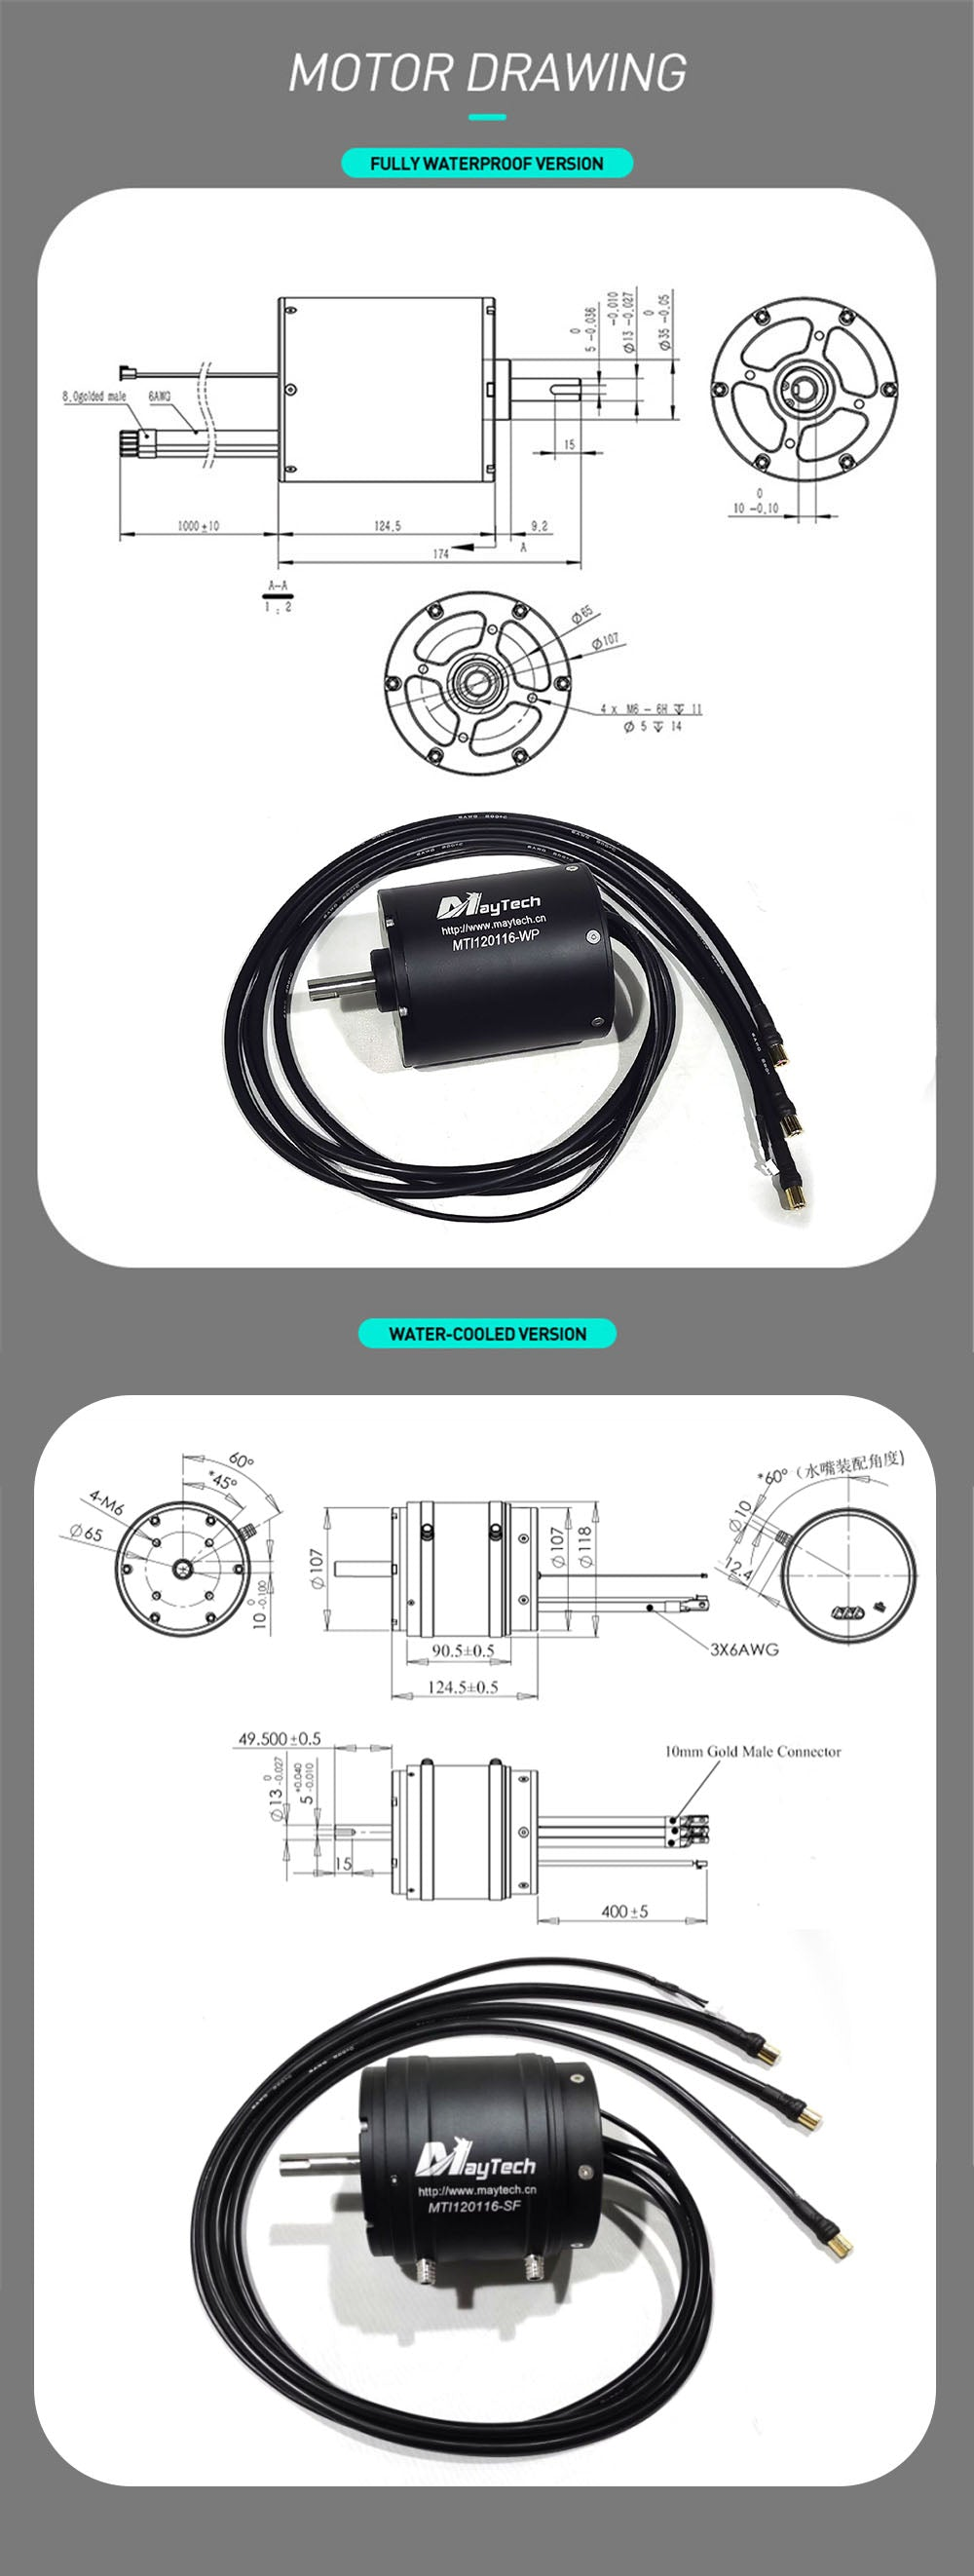 Maytech Fully Waterproof MTI120116 18.8KW Powerful Brushless Inrunner Motor for Electric Surfboard/RC Boat/Jetski